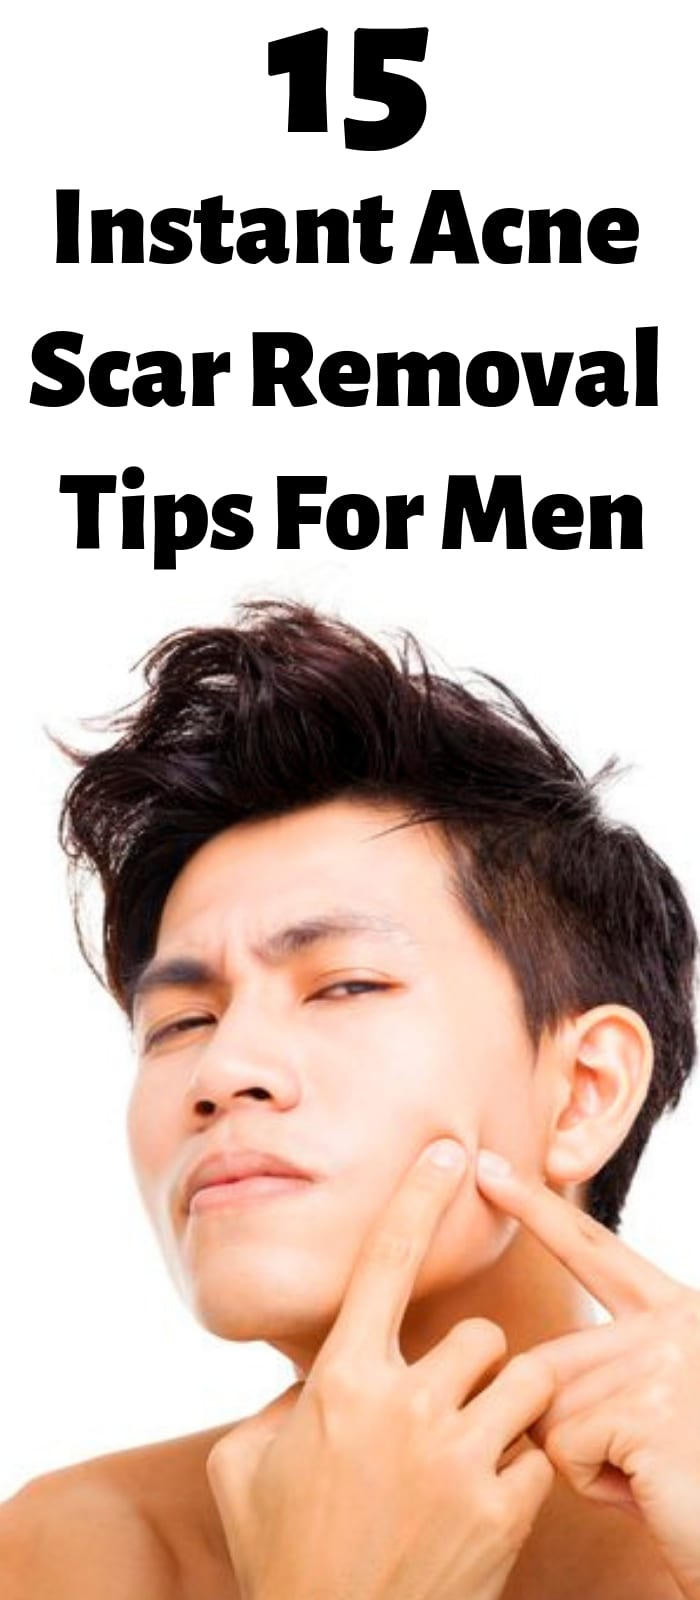 15 Instant Acne Scar Removal Tips For Men